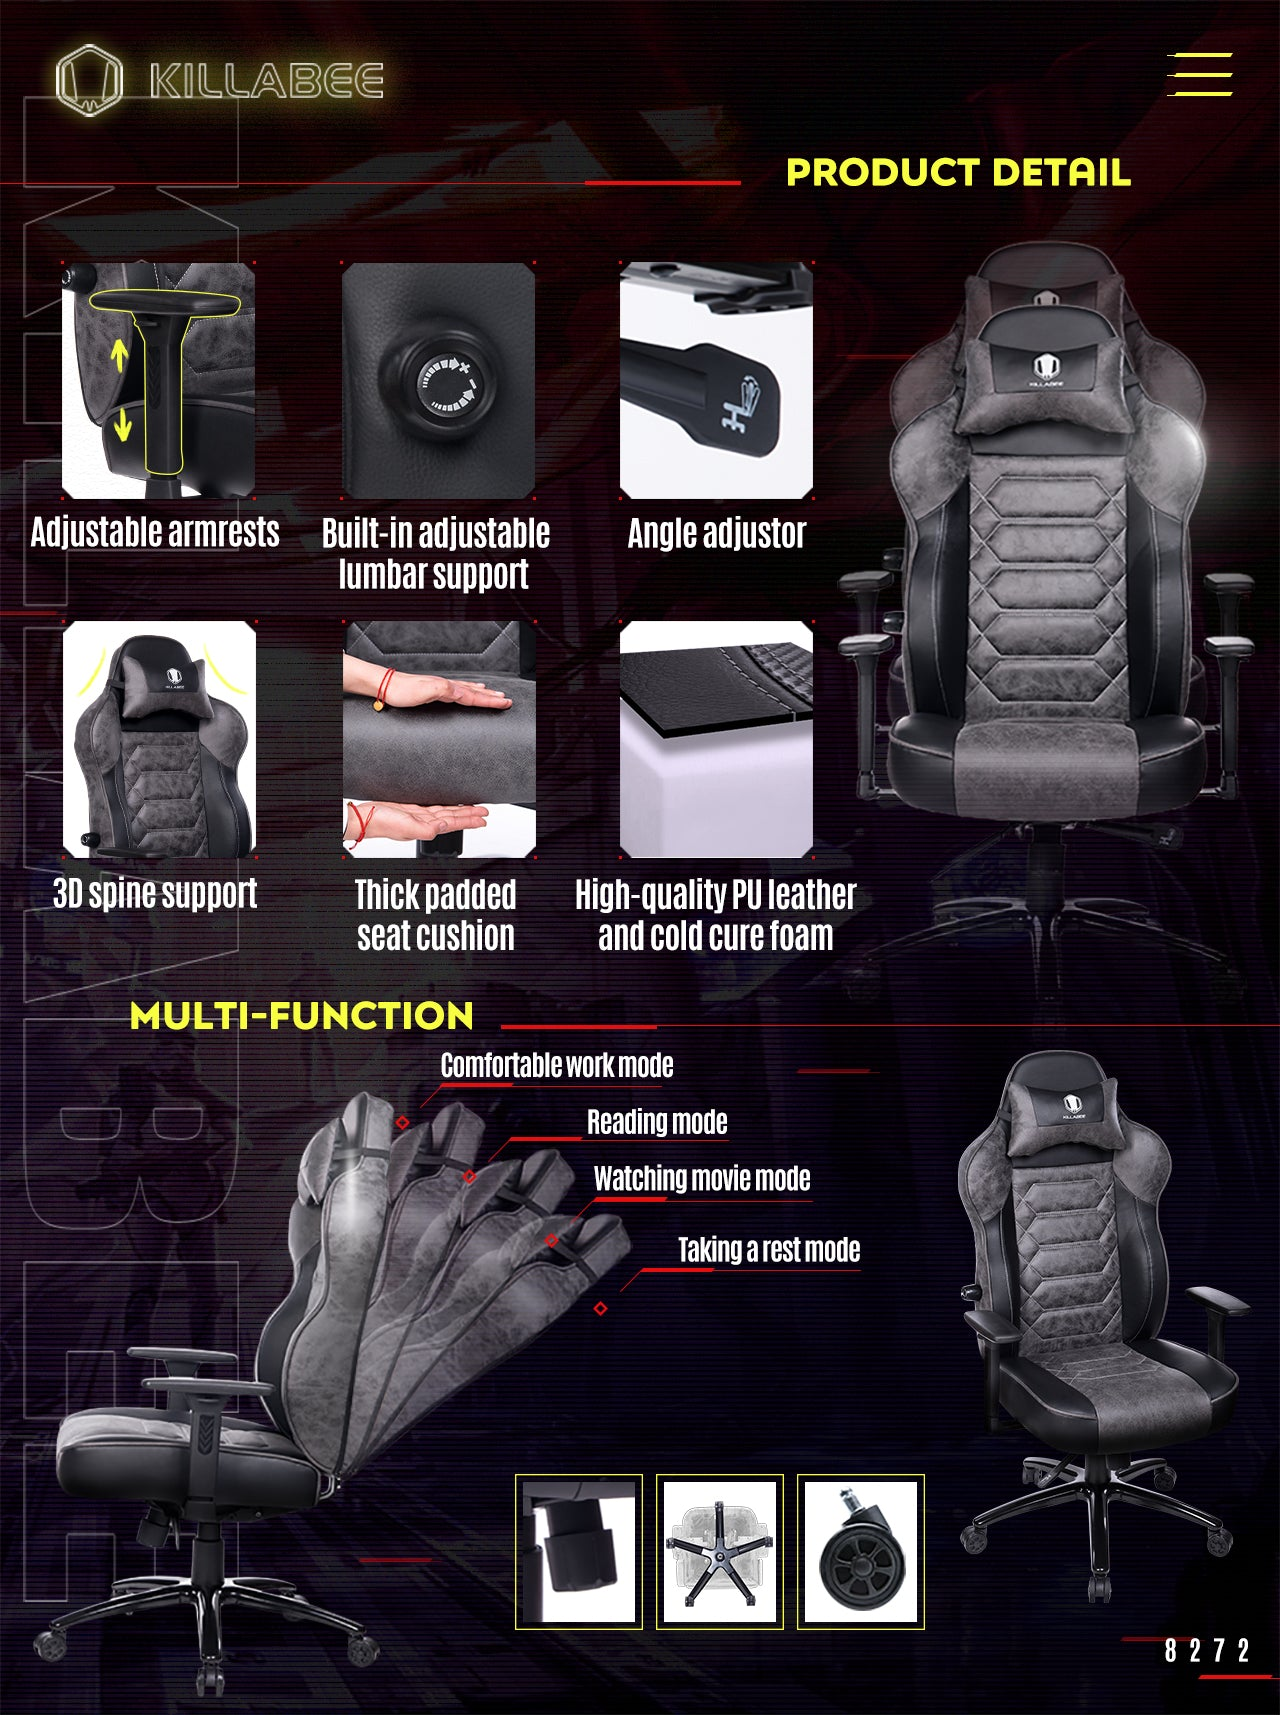 KILLABEE ERGONOMIC GAMING CHAIR 8272 GRAY FEATURES